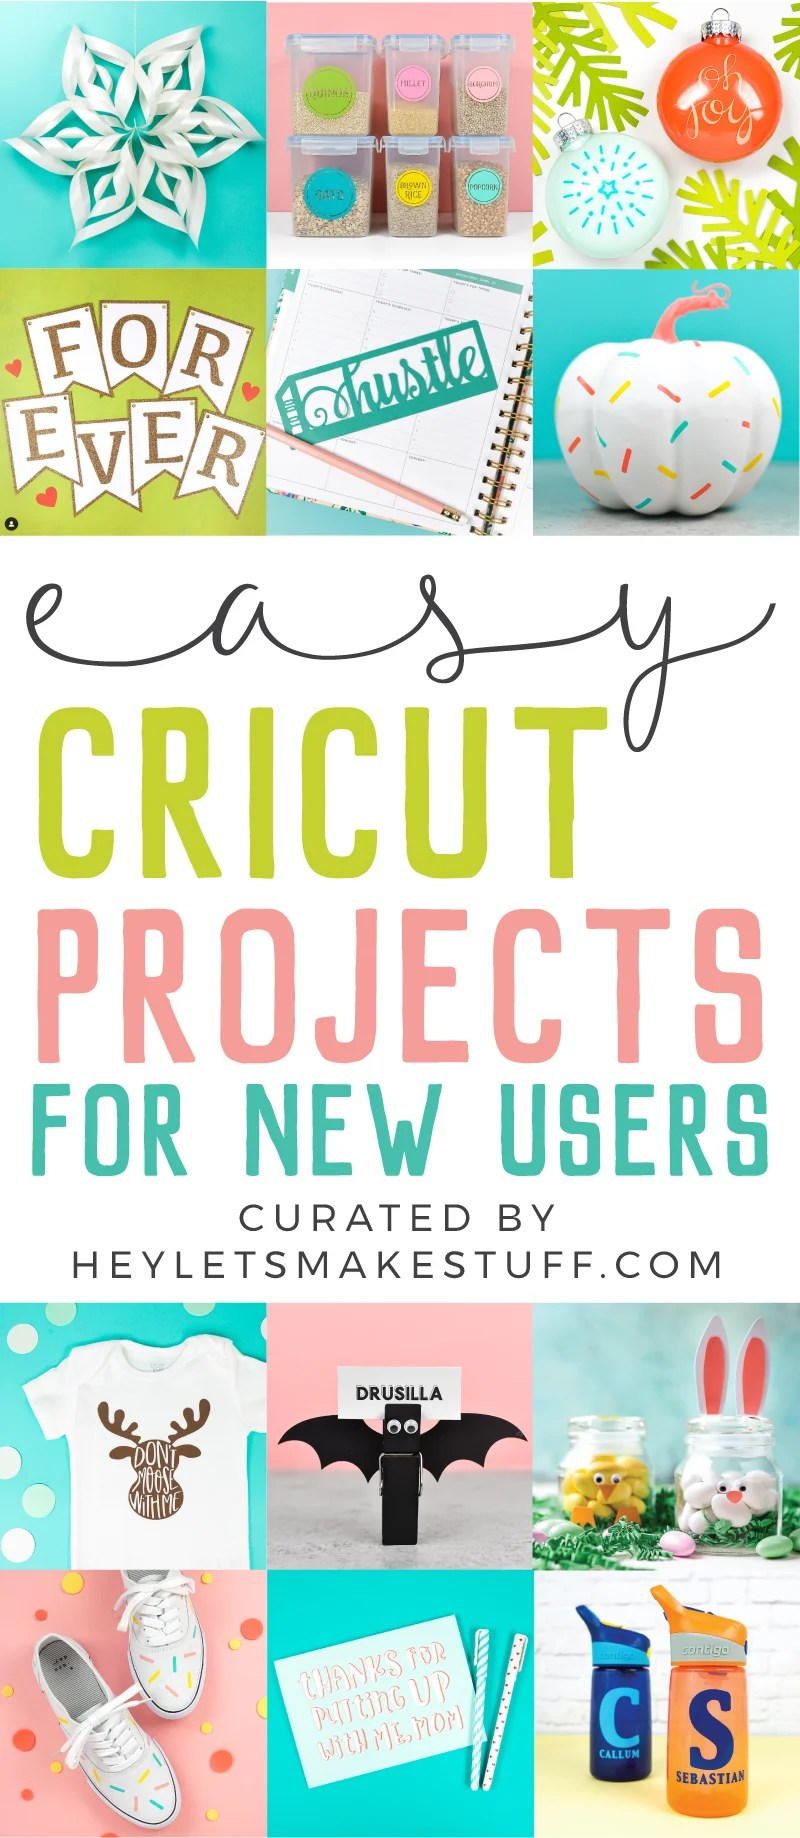 New to using your Cricut? These easy Cricut projects for beginners are the perfect place to start! Get your feet wet with these fun but simple Cricut crafts using your Cricut Explore Air 2 or Cricut Maker machine. via @heyletsmakestuf